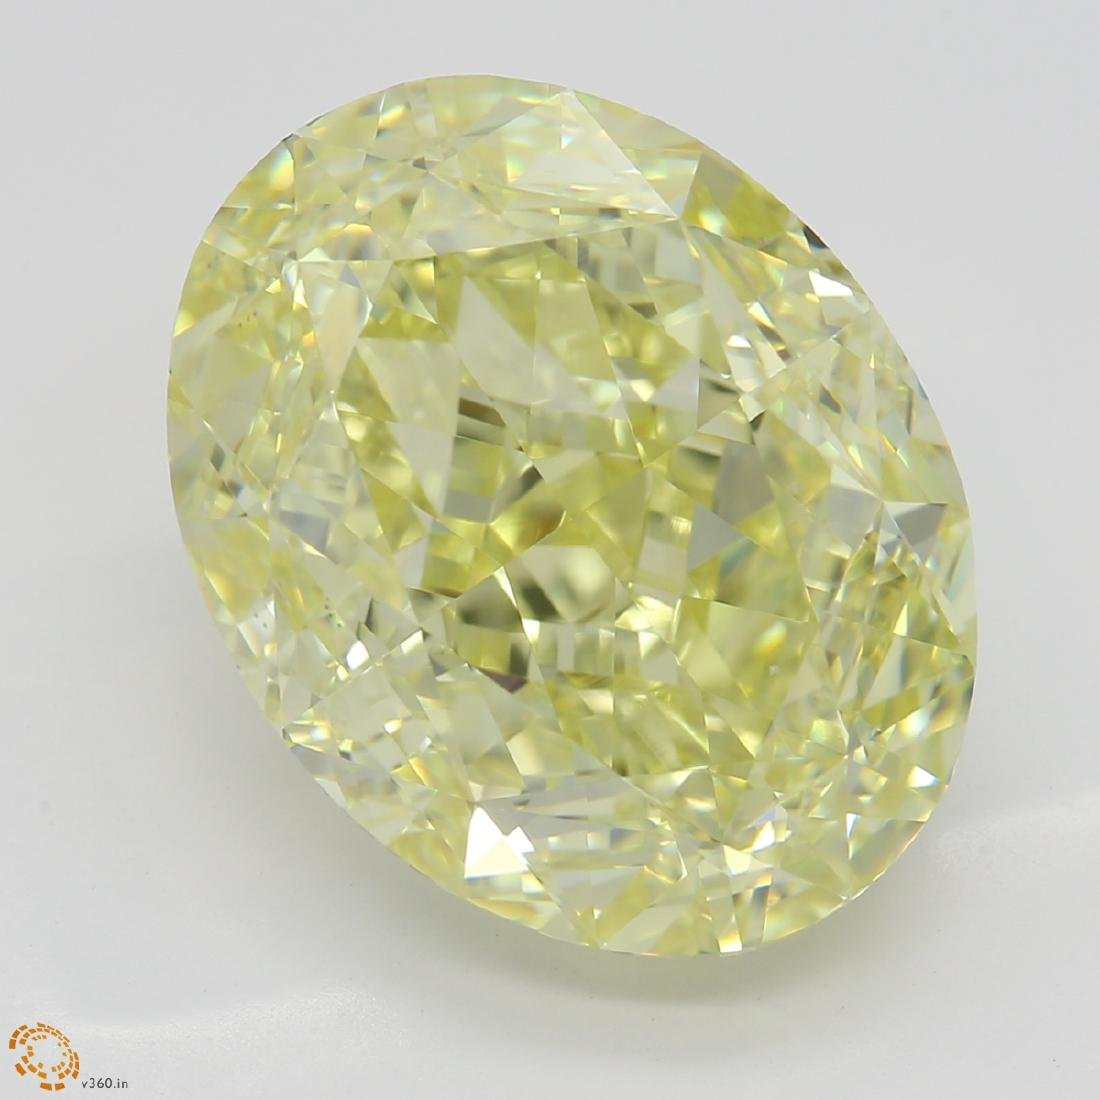 8.56 ct, Yellow/VS2, Oval cut Diamond